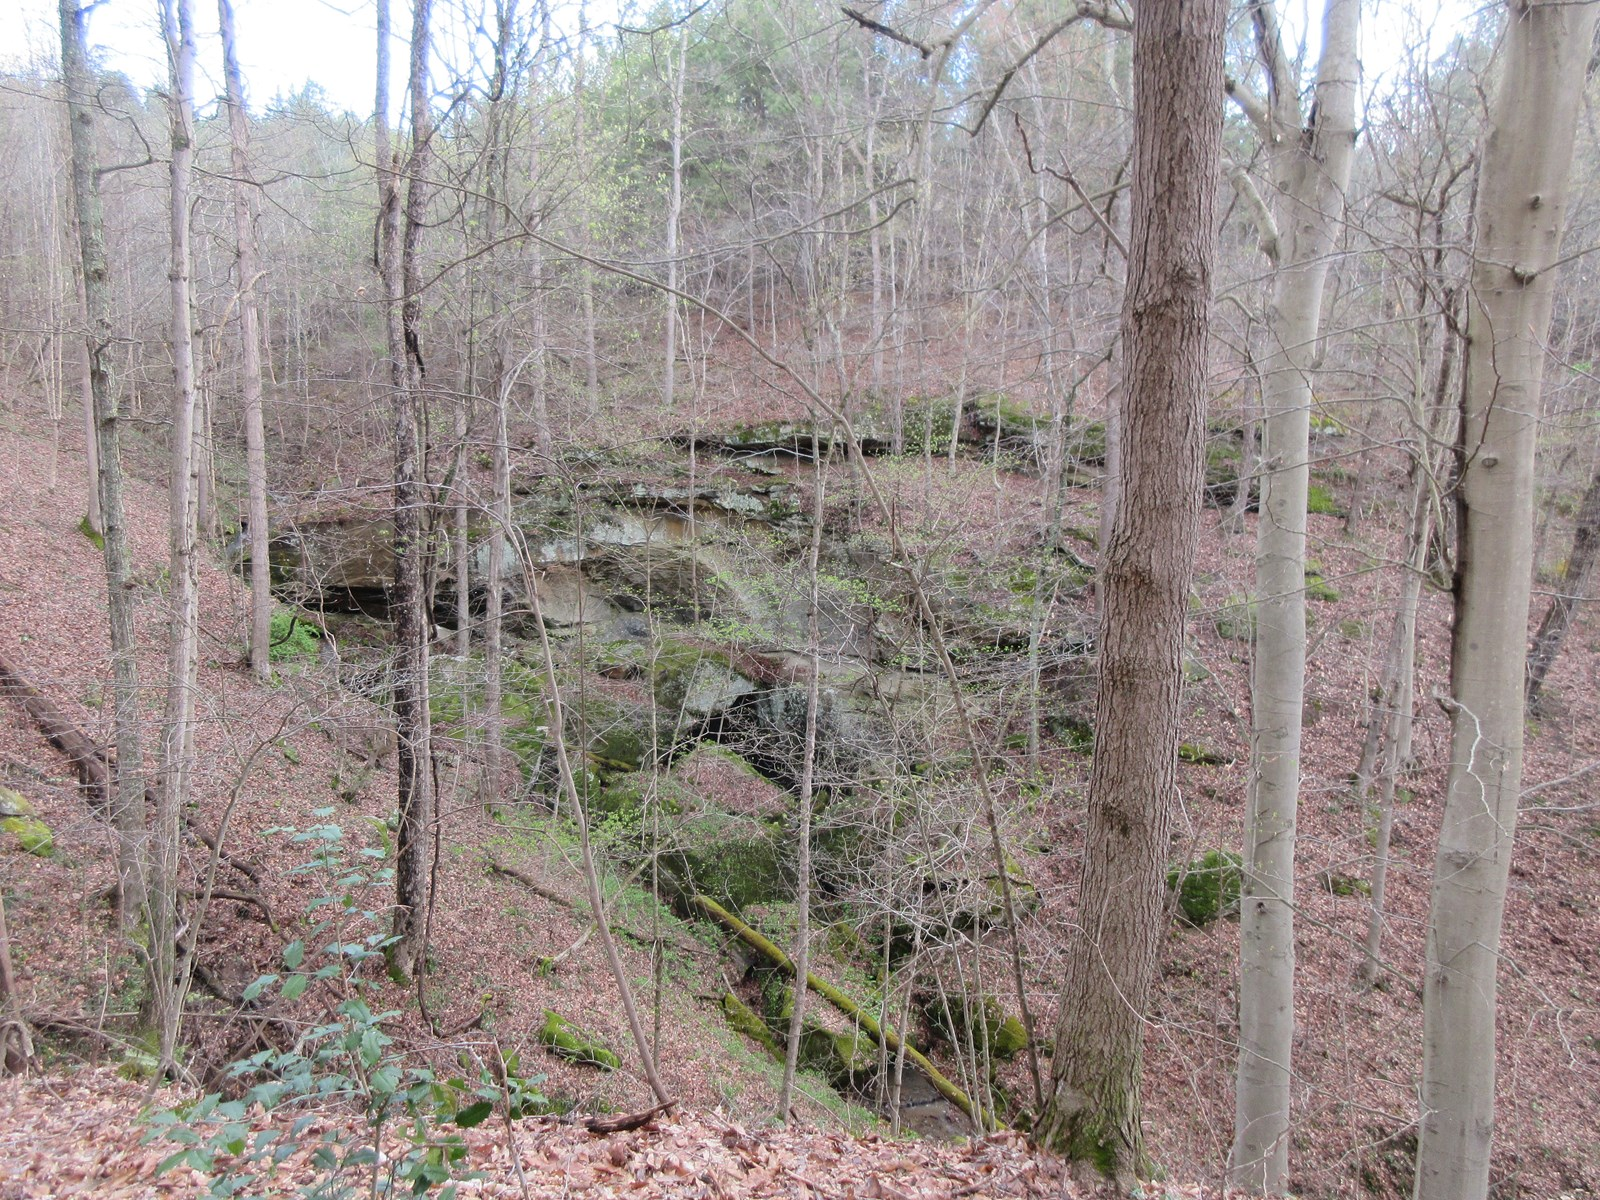 Meigs county Hunting Land with Timber Potential